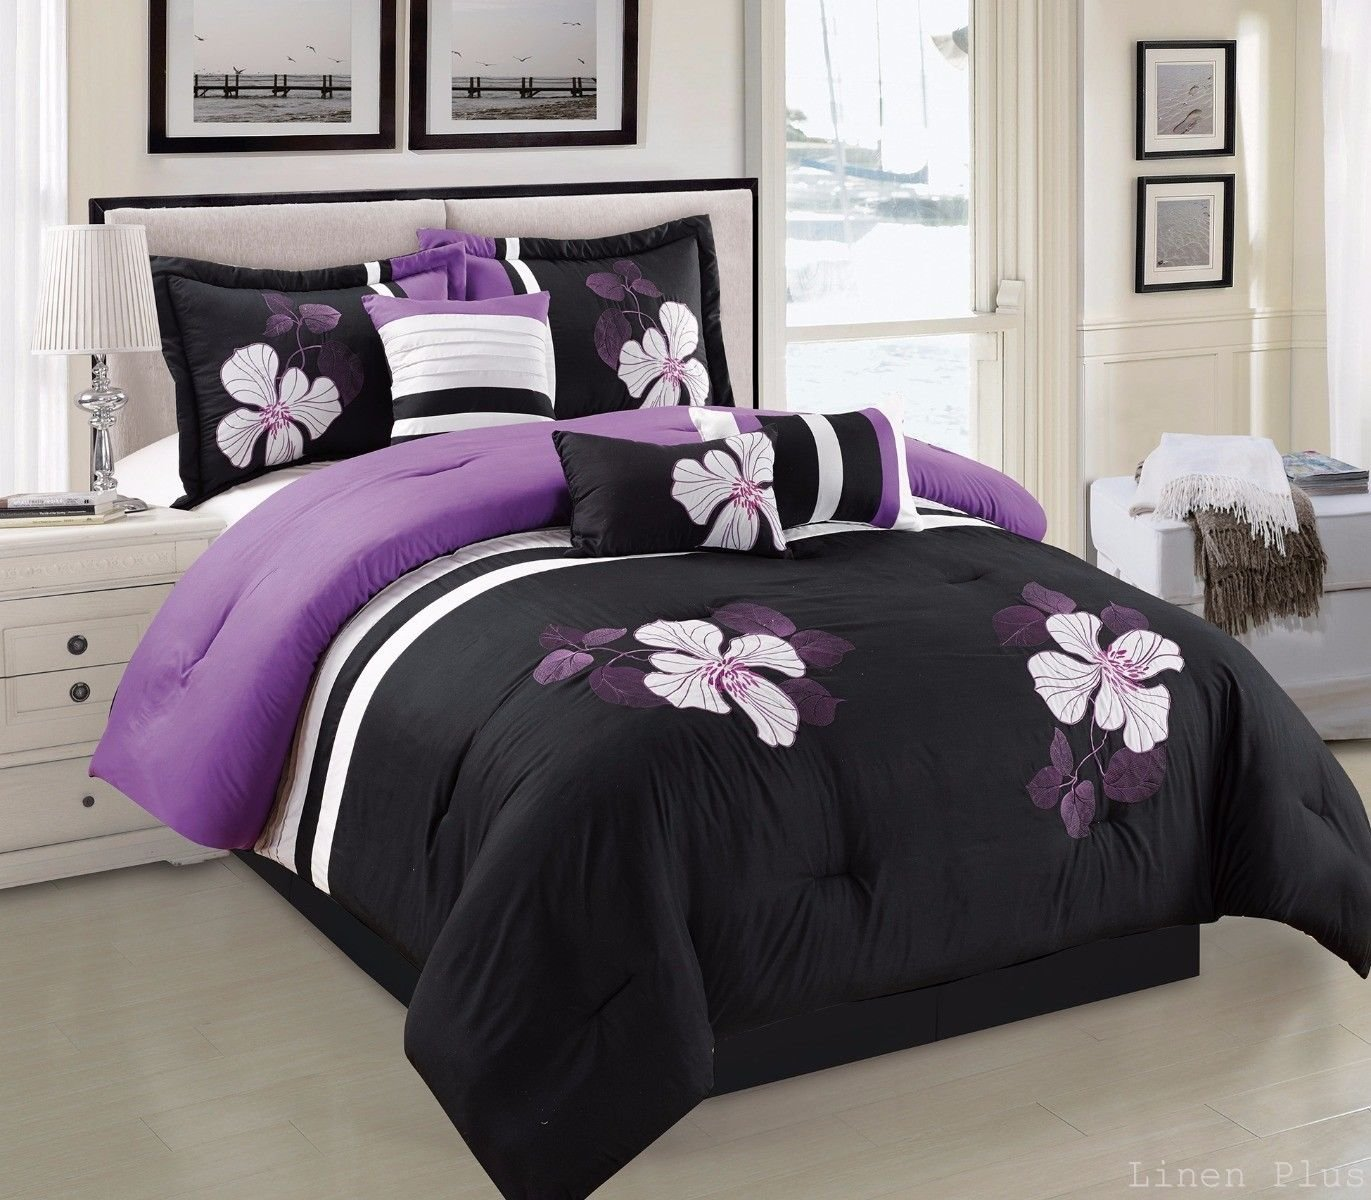 Black and purple bed sheets - Bedding Sets 7 Piece Black Purple Embroidery Comforter Set Queen Size